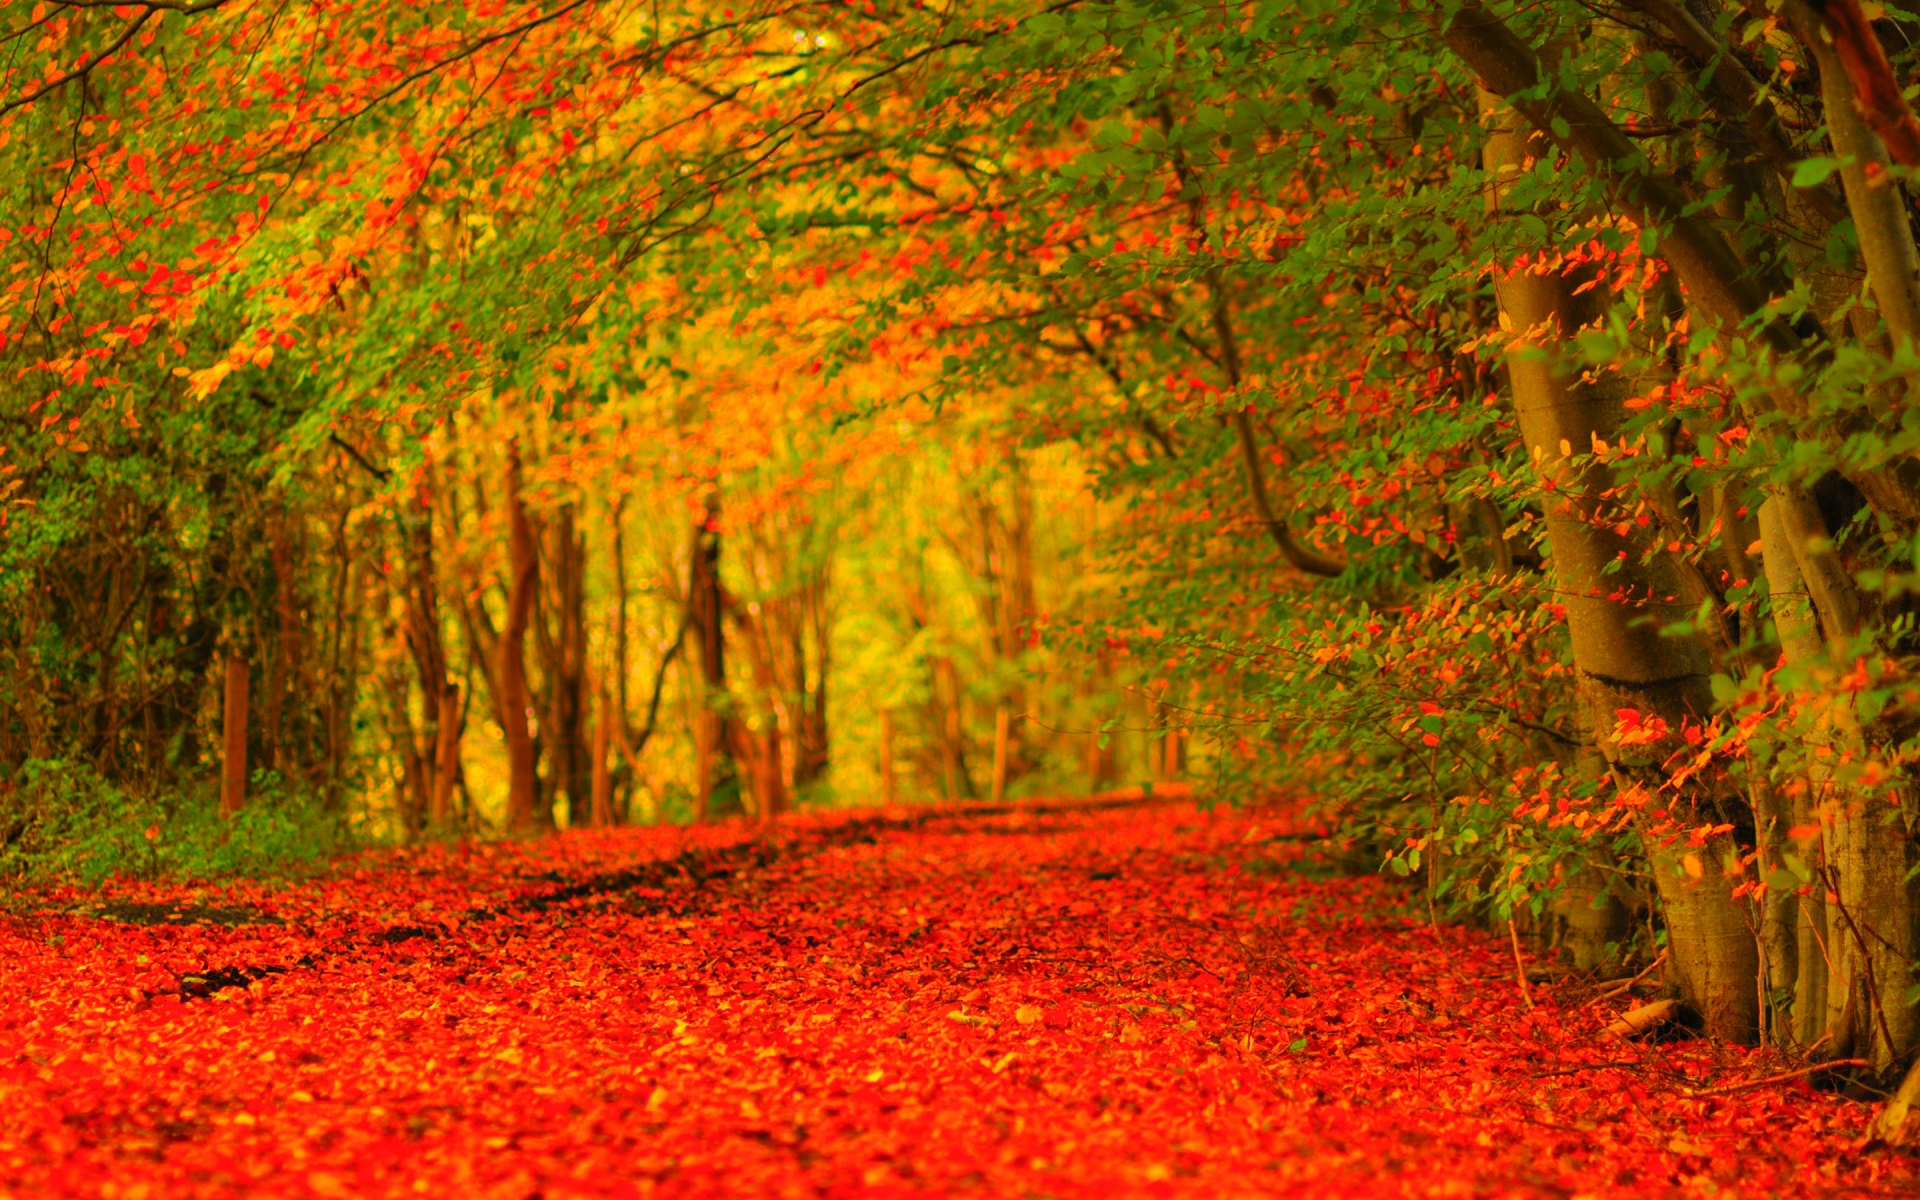 70 ] Autumn Screen Wallpaper On WallpaperSafari